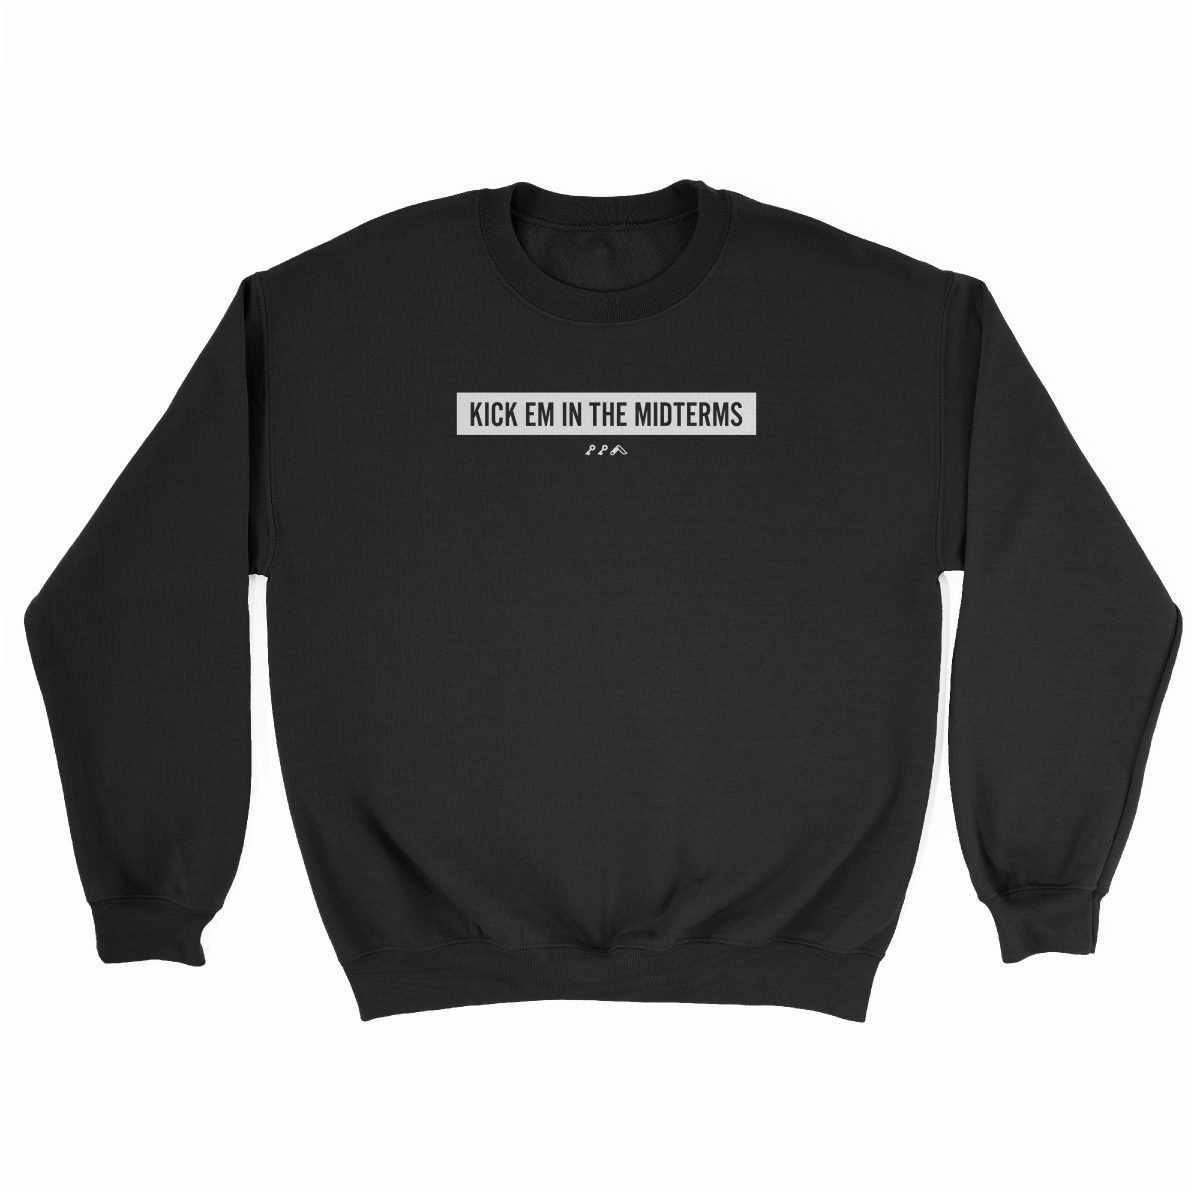 """KICK EM IN THE MIDTERMS"" funny political sweatshirt in black"